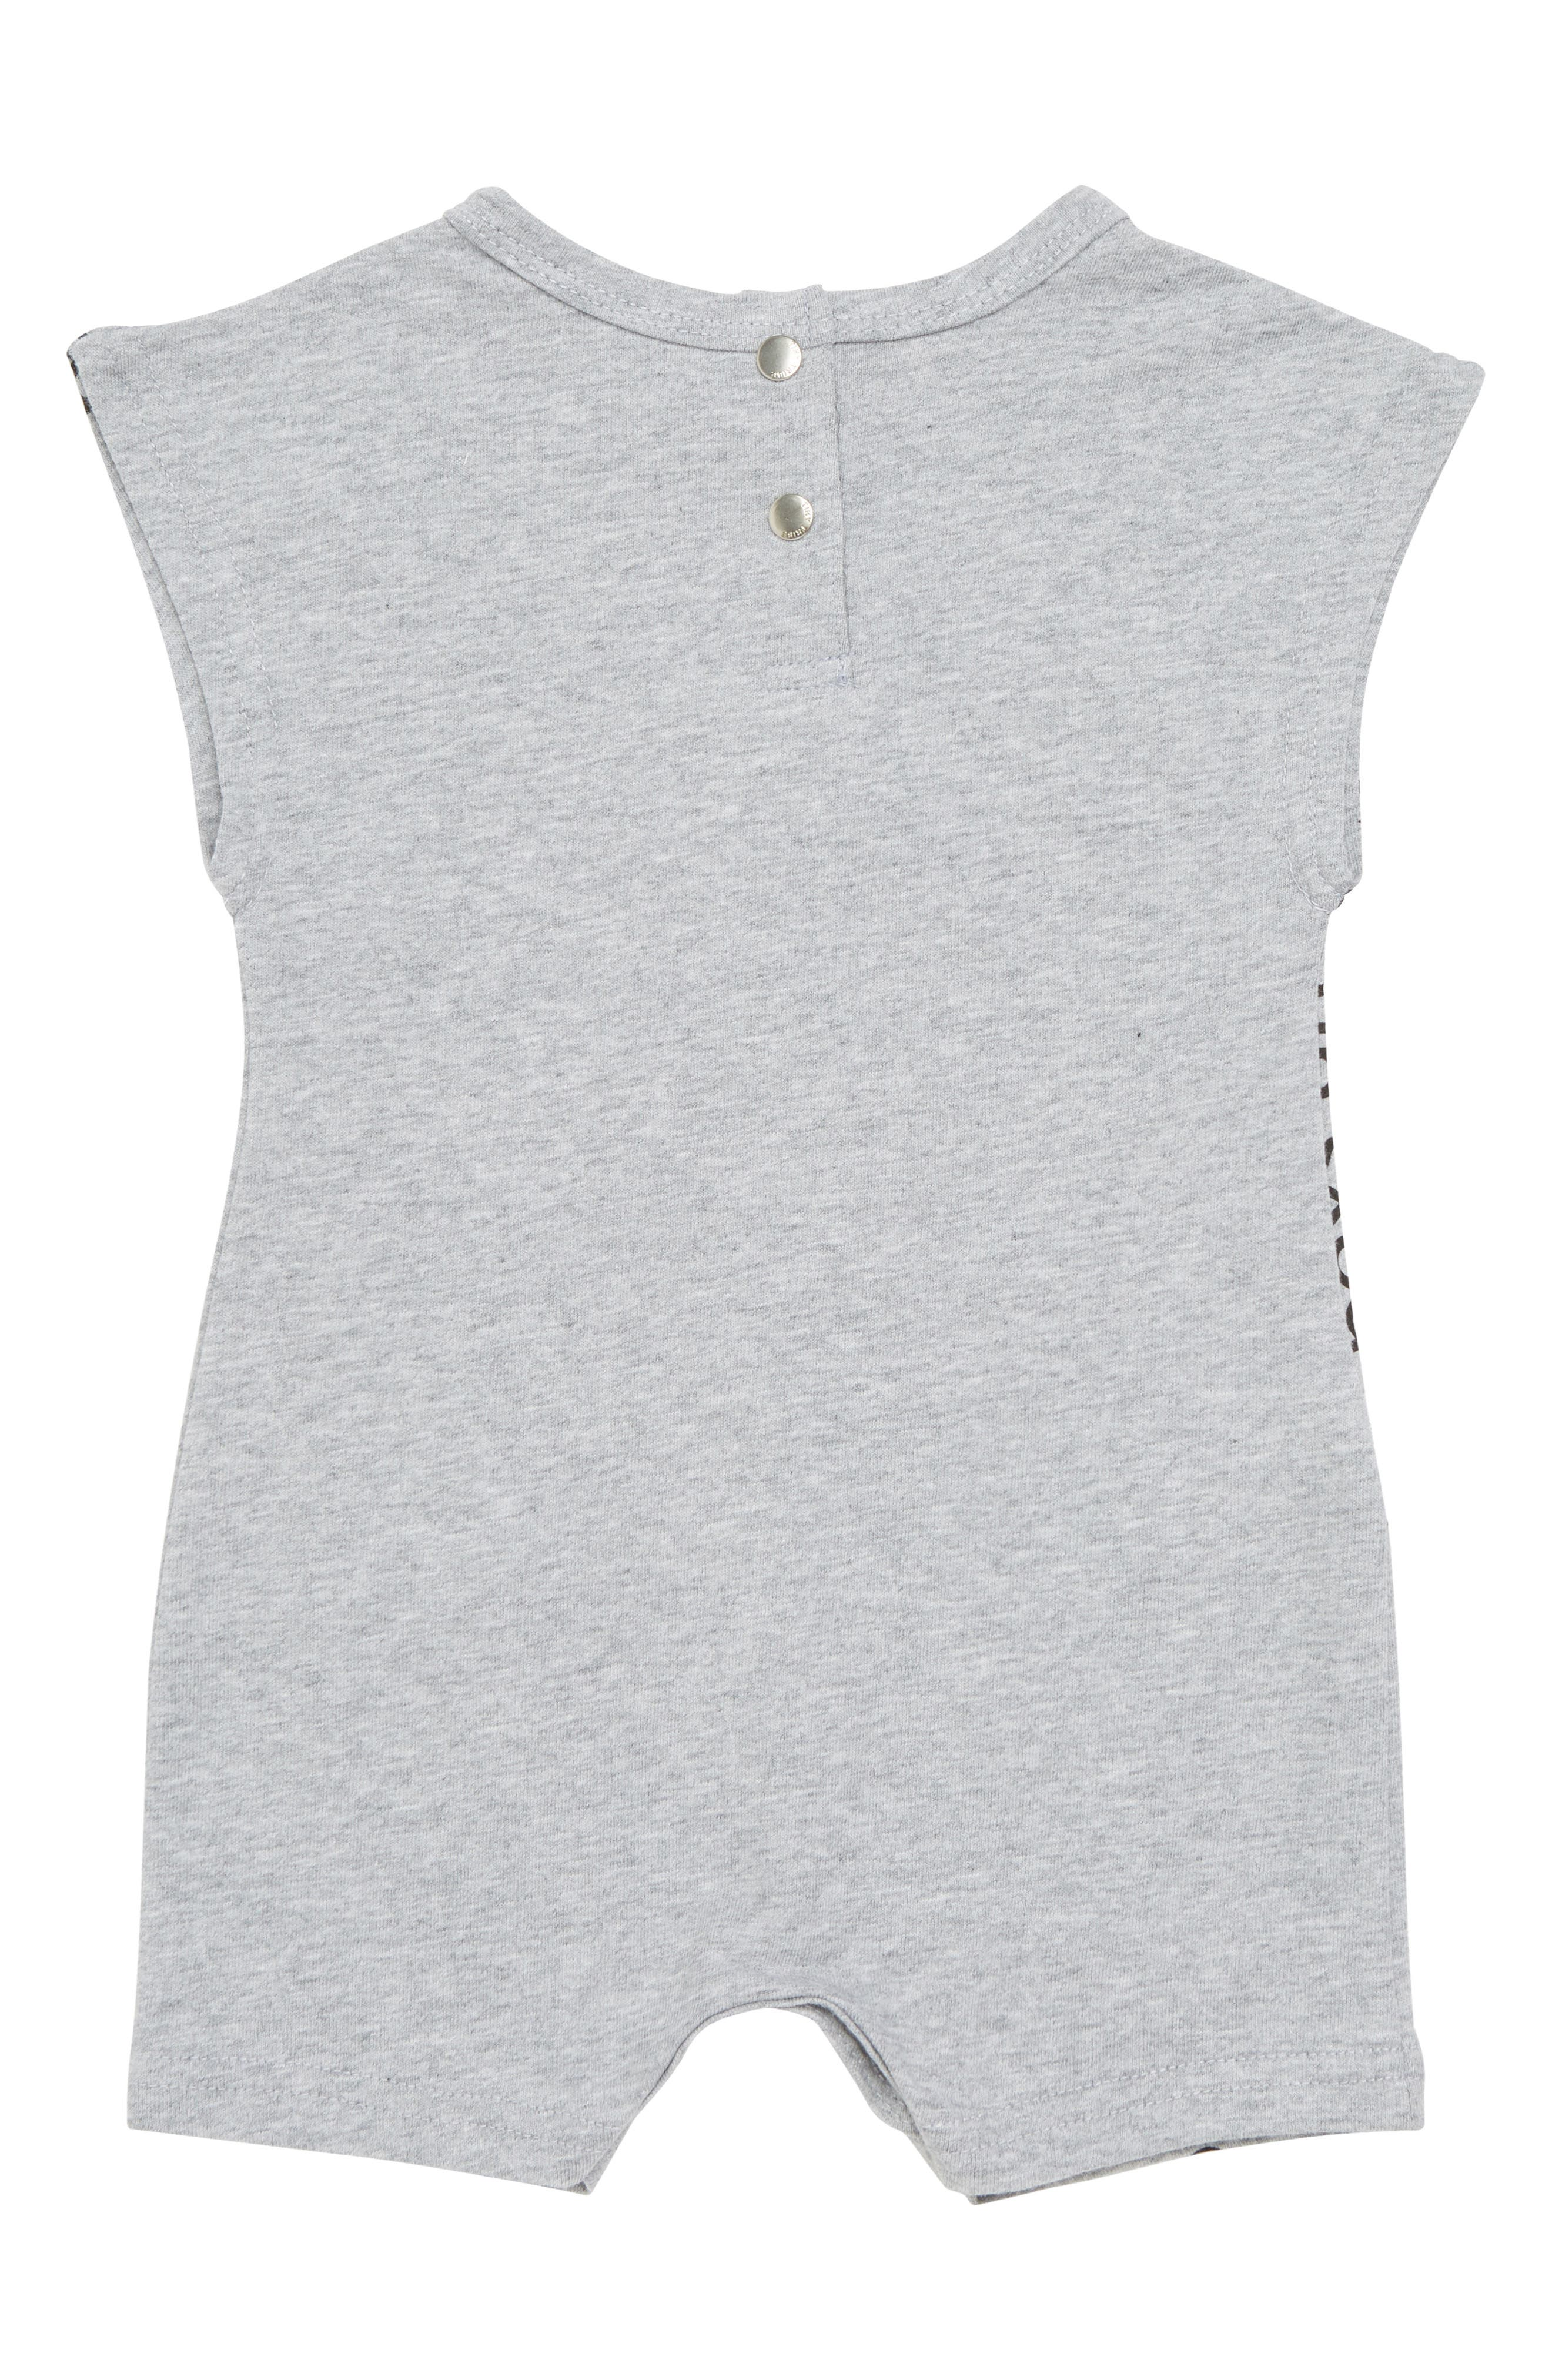 Boys are Awesome Romper,                             Alternate thumbnail 2, color,                             035